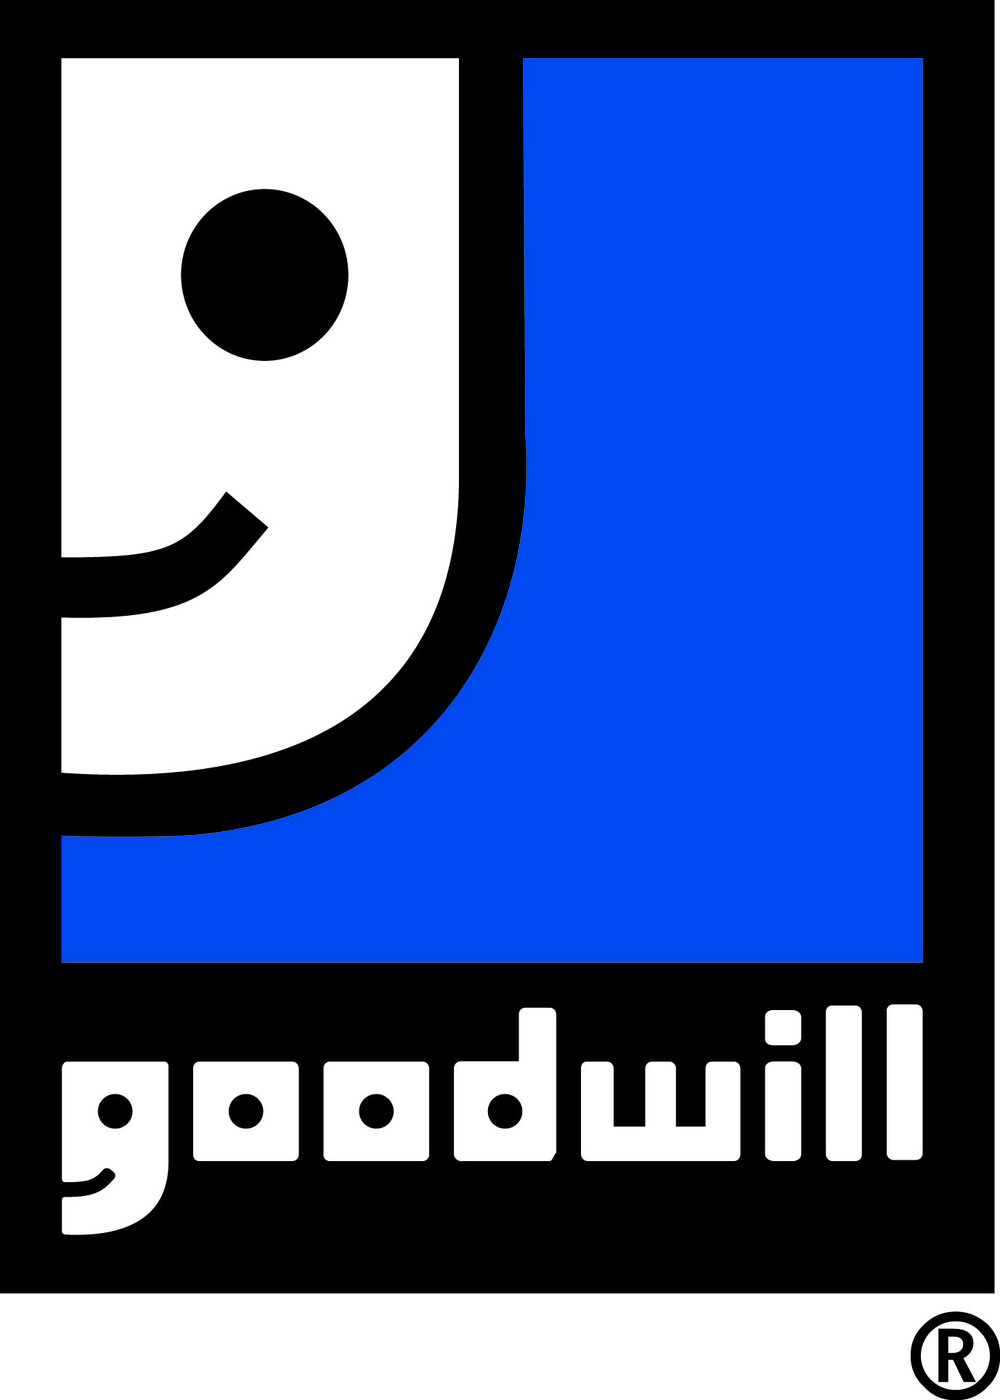 Goodwill_2color_SmilingG.jpg